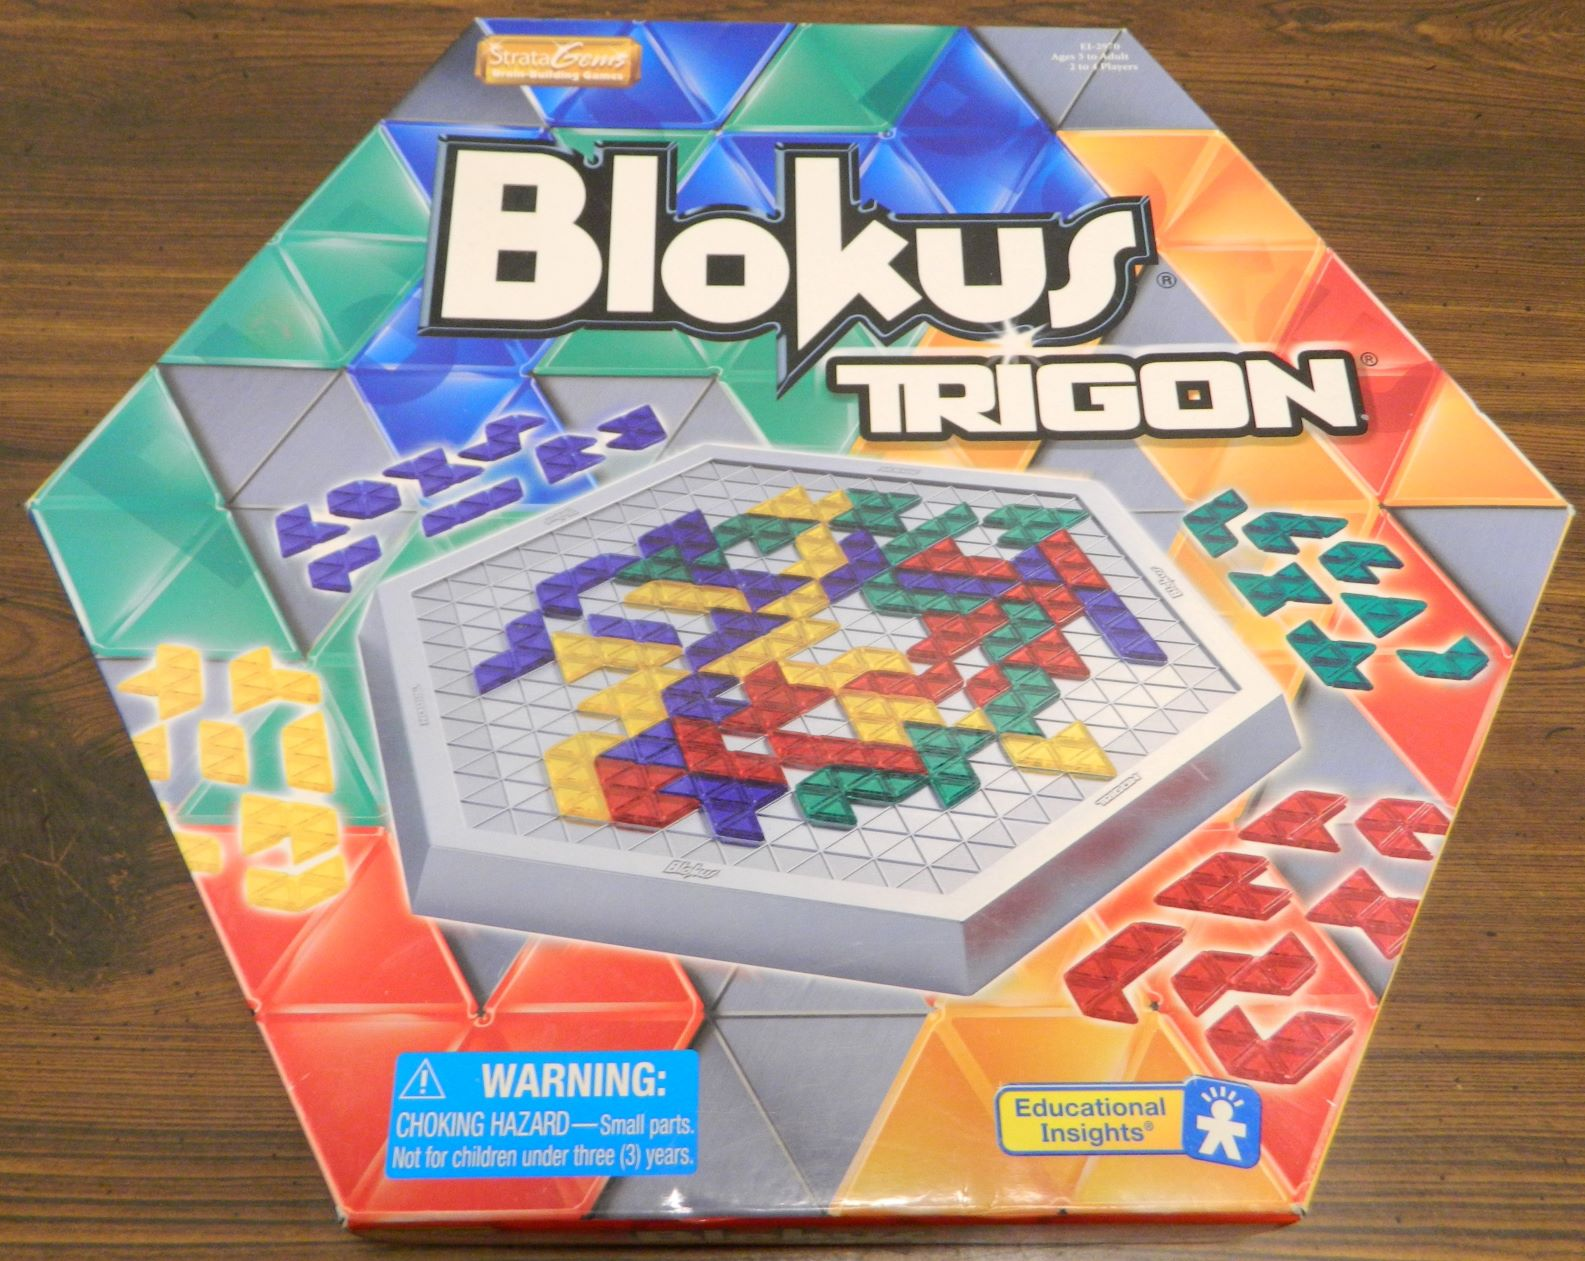 Box for Blokus Trigon